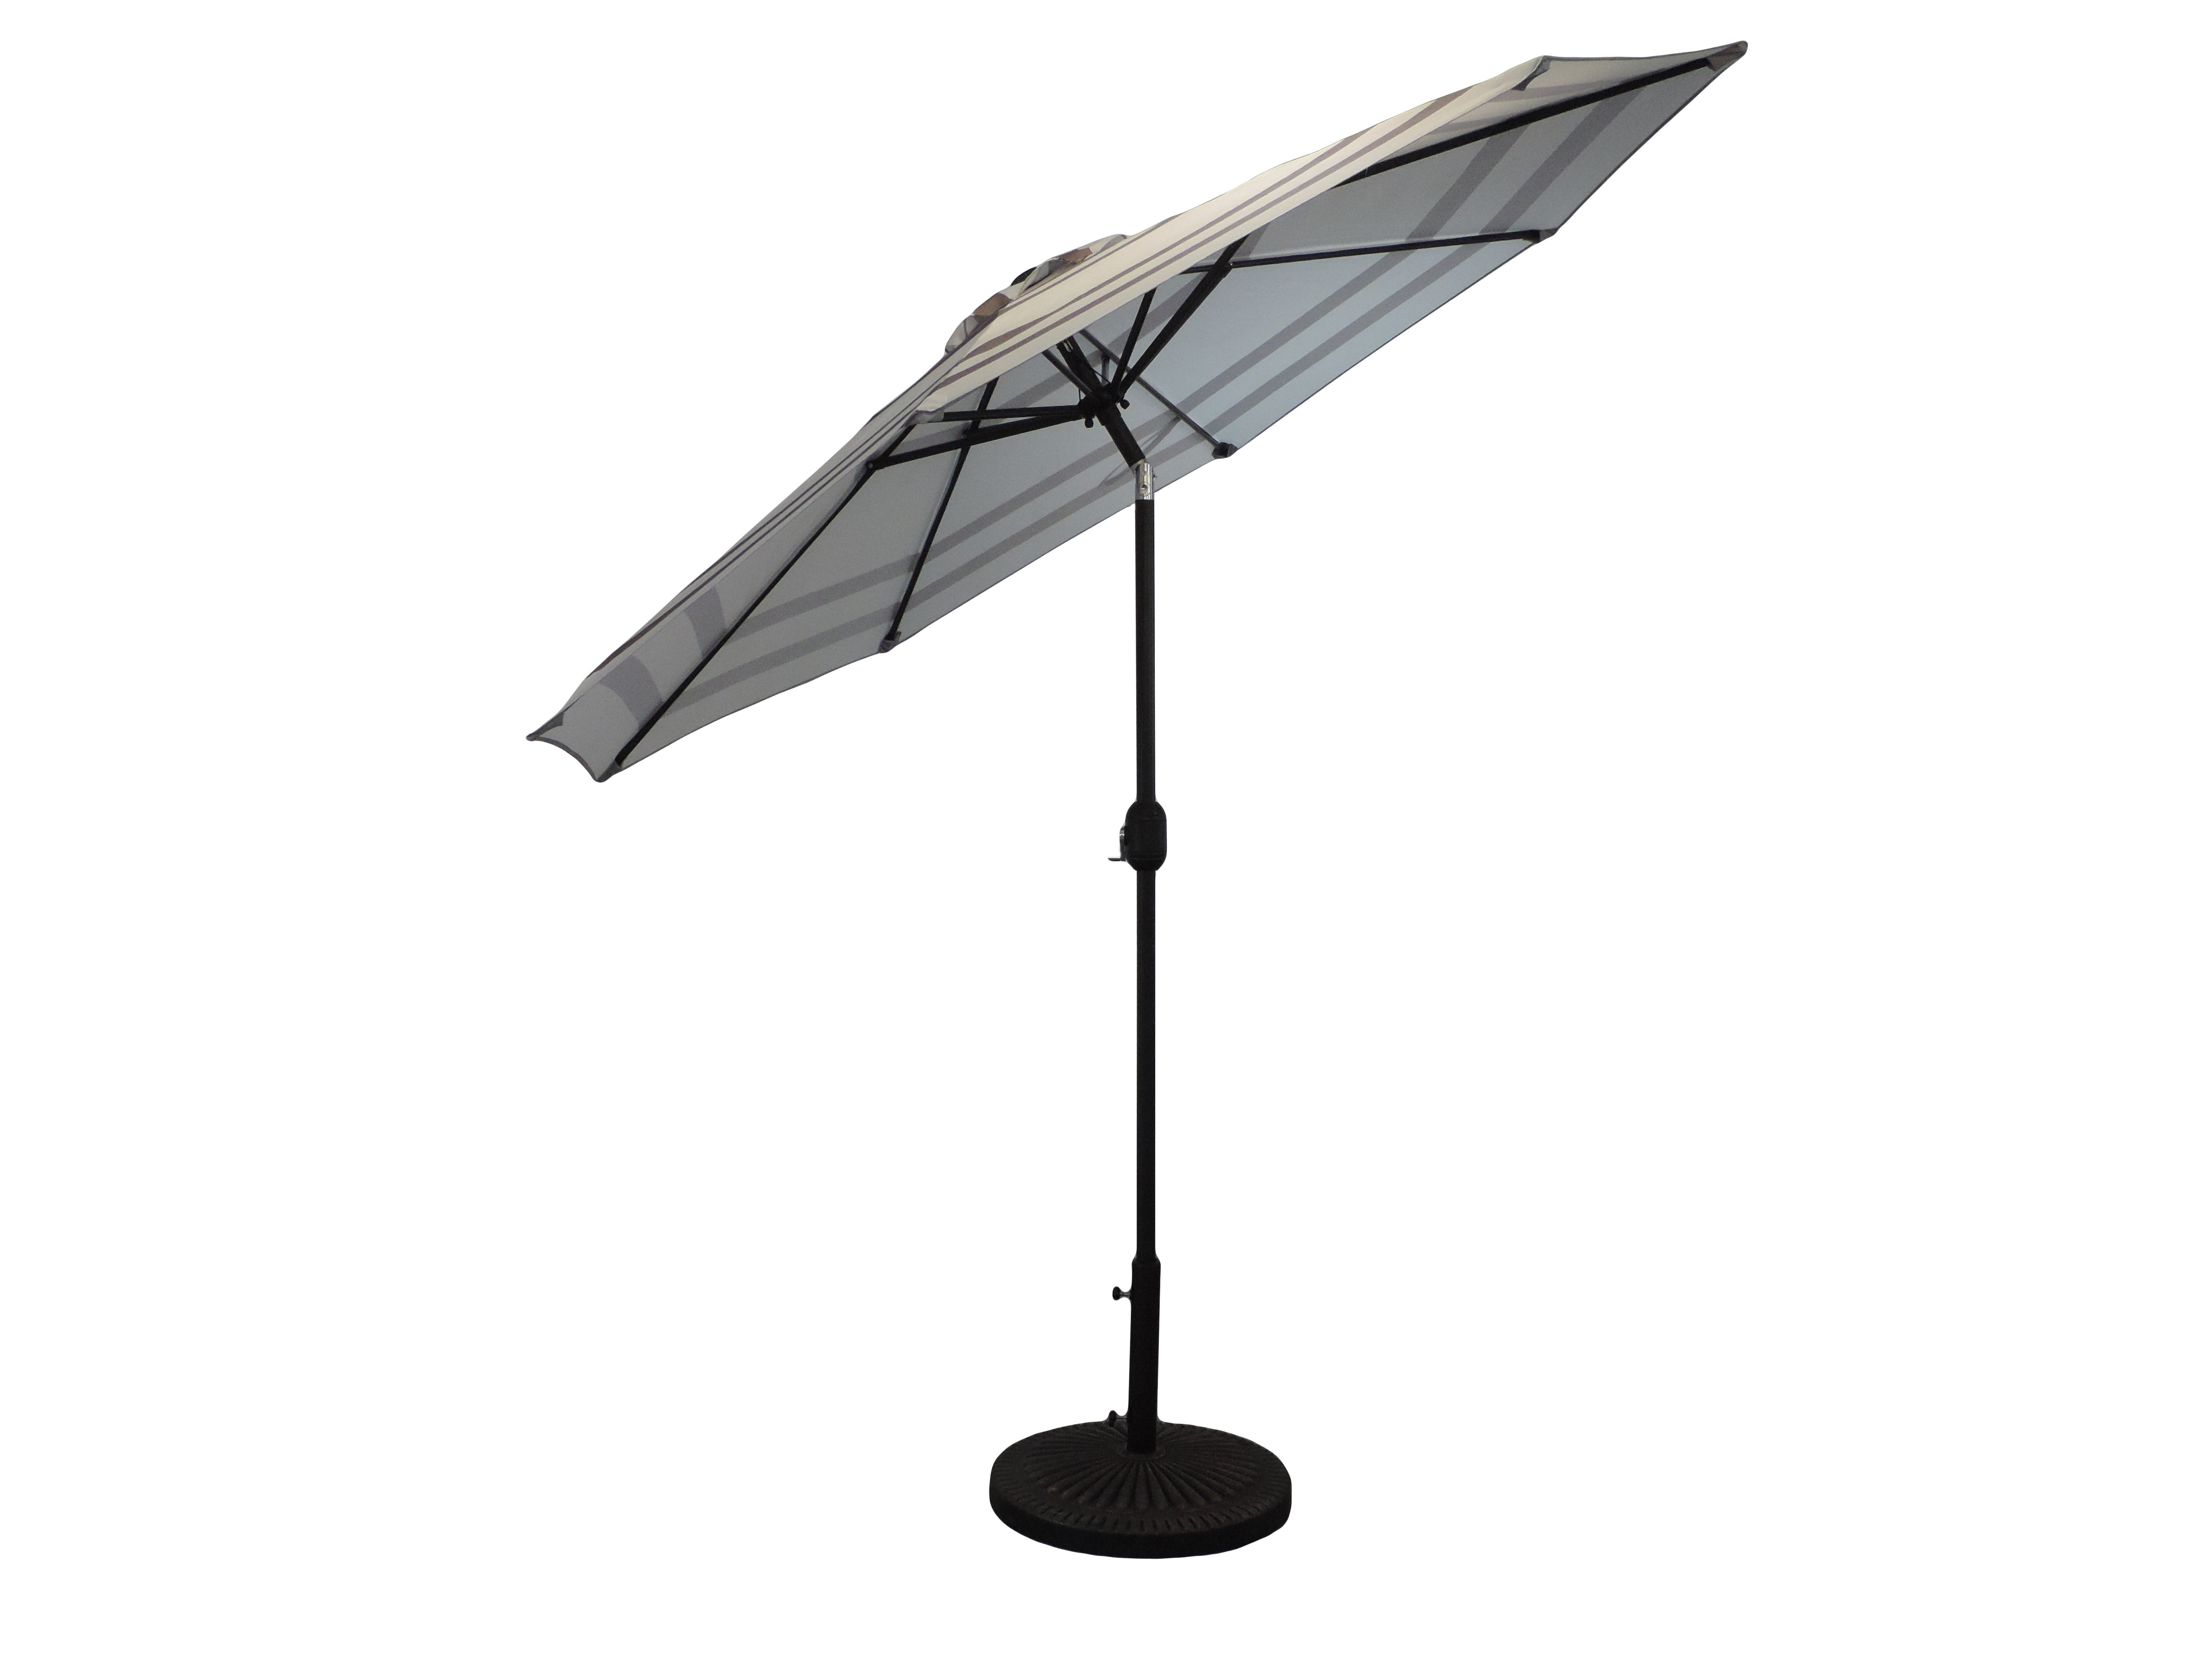 Most Recently Released Manila Striped Patio 9' Market Umbrella Intended For Gainsborough Market Umbrellas (Gallery 13 of 20)